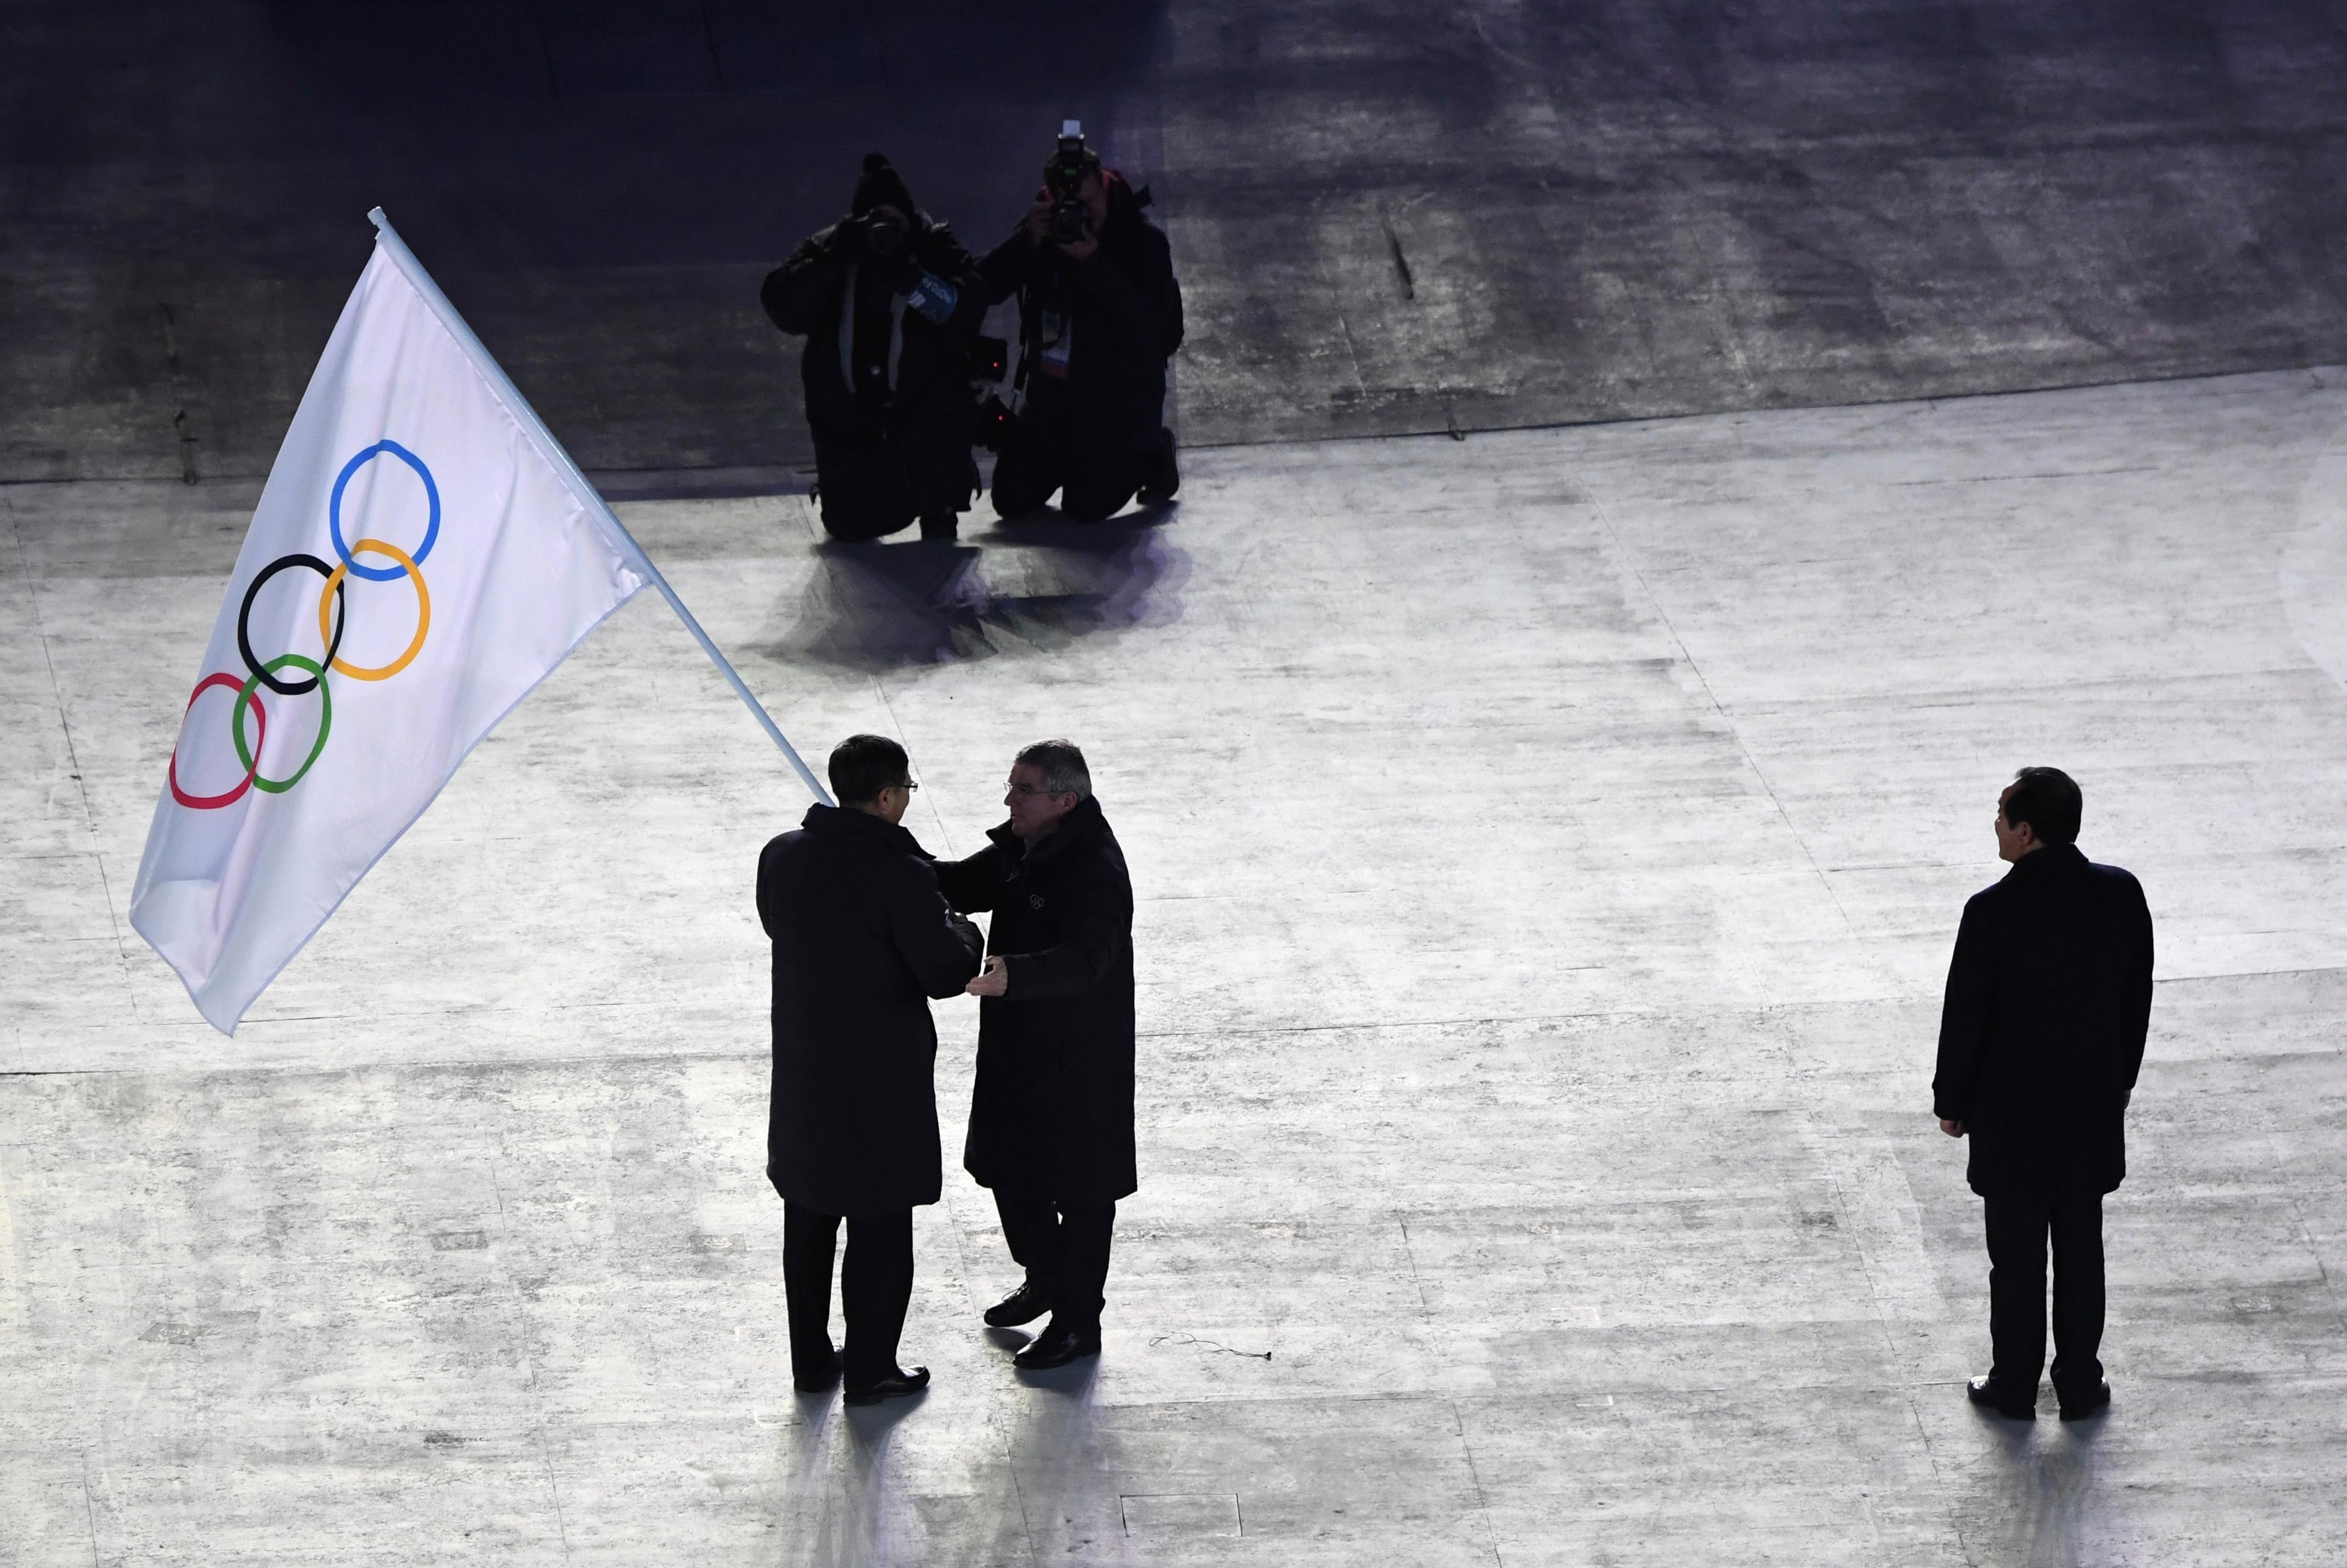 International Olympic Committee President Thomas Bach, center, hands the Olympic flag to the mayor of Beijing, China, Chen Jining, during the closing ceremony of the 2018 Winter Olympics in Pyeongchang, South Korea, Sunday, Feb. 25, 2018. Sim Jae-guk, the mayor of Pyeongchang, South Korea, is at right. (Florien Choblet/Pool Photo via AP)